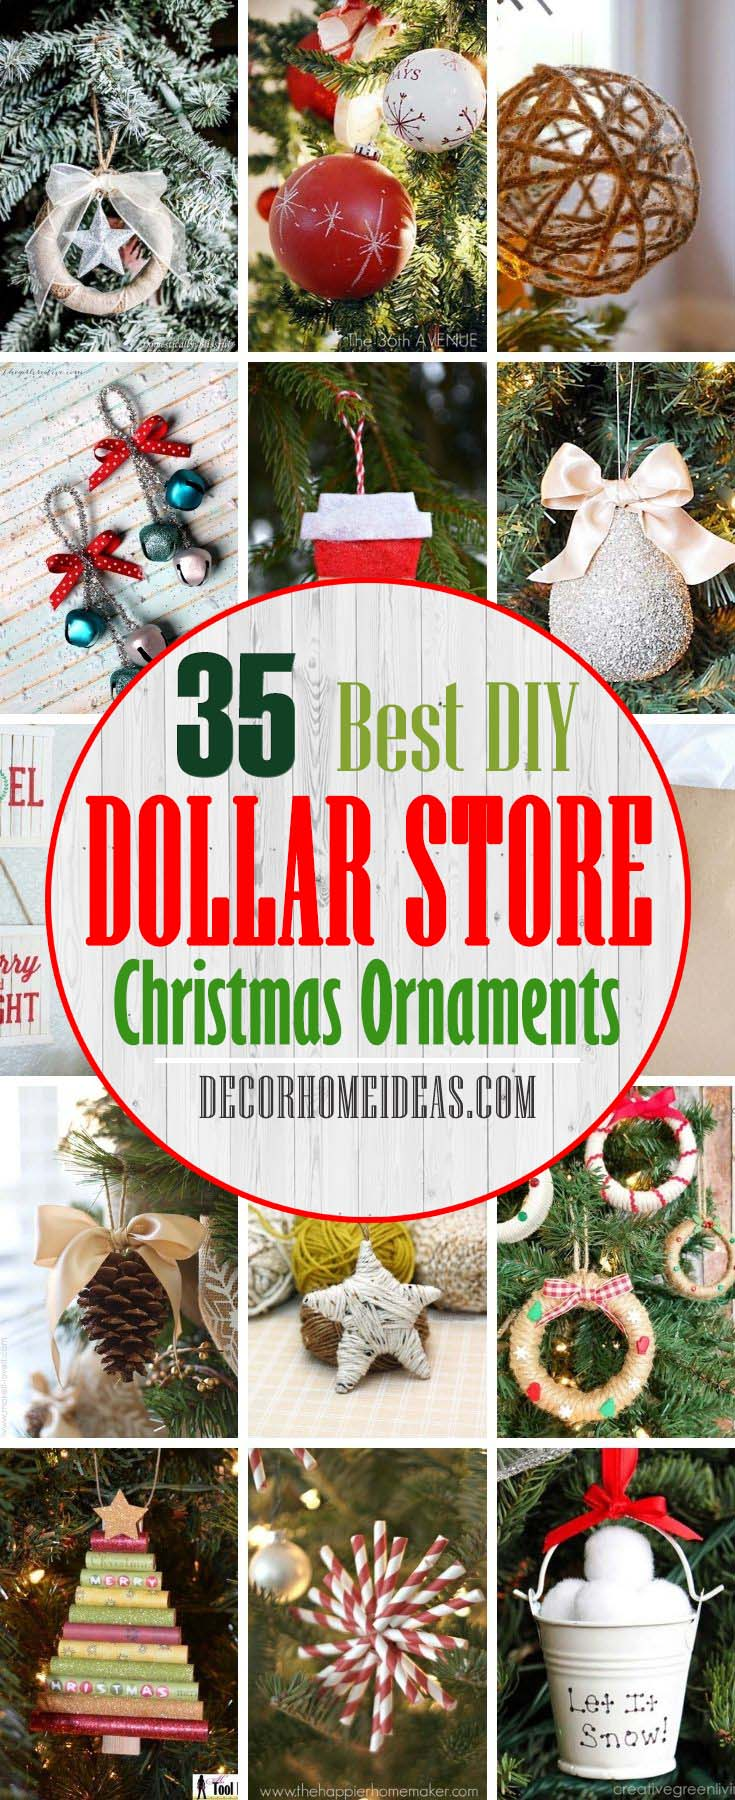 Best Dollar Store DIY Christmas Ornaments. Discover the Best Dollar Tree DIY. Discover the Best Dollar Tree DIY Christmas Ornaments that you could do to make your Christmas tree even more dazzling! These festive craft ideas and DIY ornaments for Christmas are from the Dollar Store or Dollar Tree. #decorhomeideas